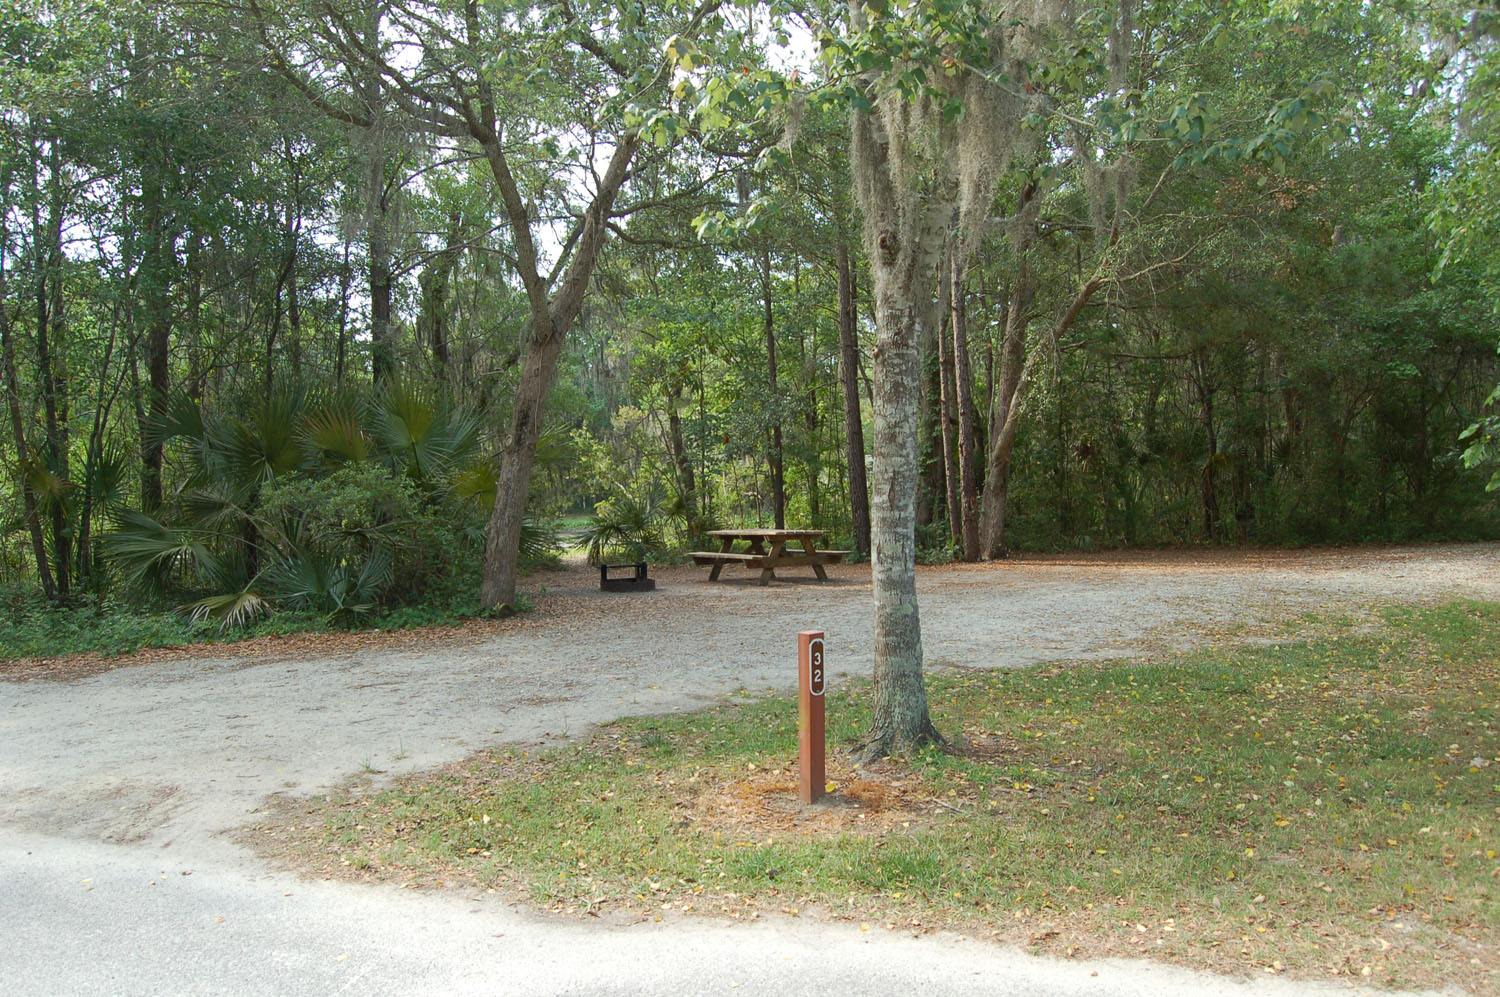 Image of campsite #32 at the Campground at James Island County Park